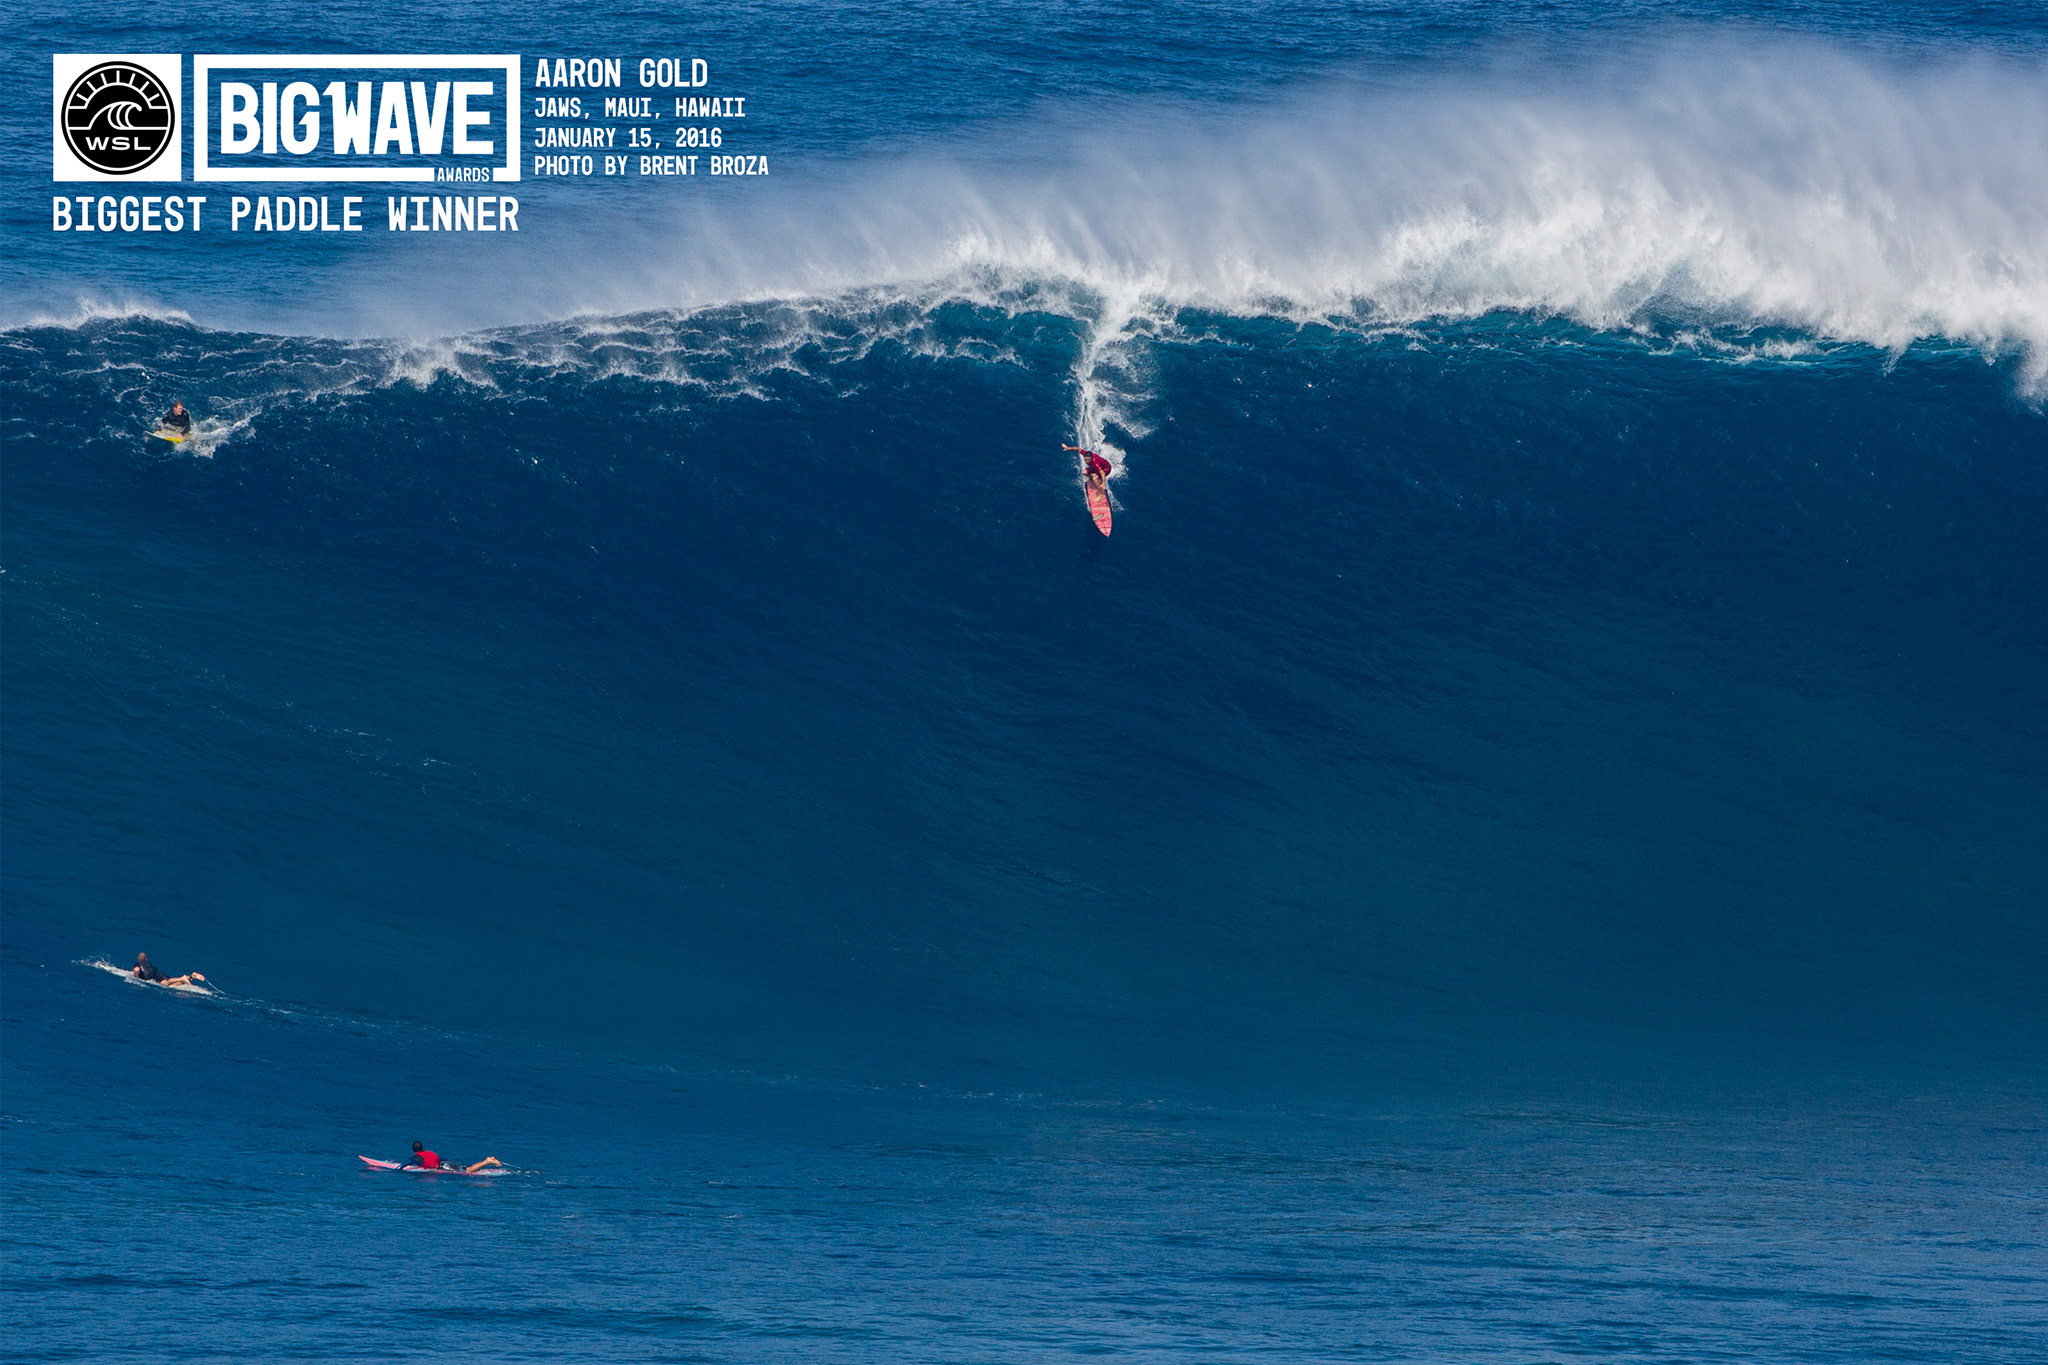 Aaron Gold won the biggest paddle wave award and also set a new world record at 63 ft. Photo: WSL